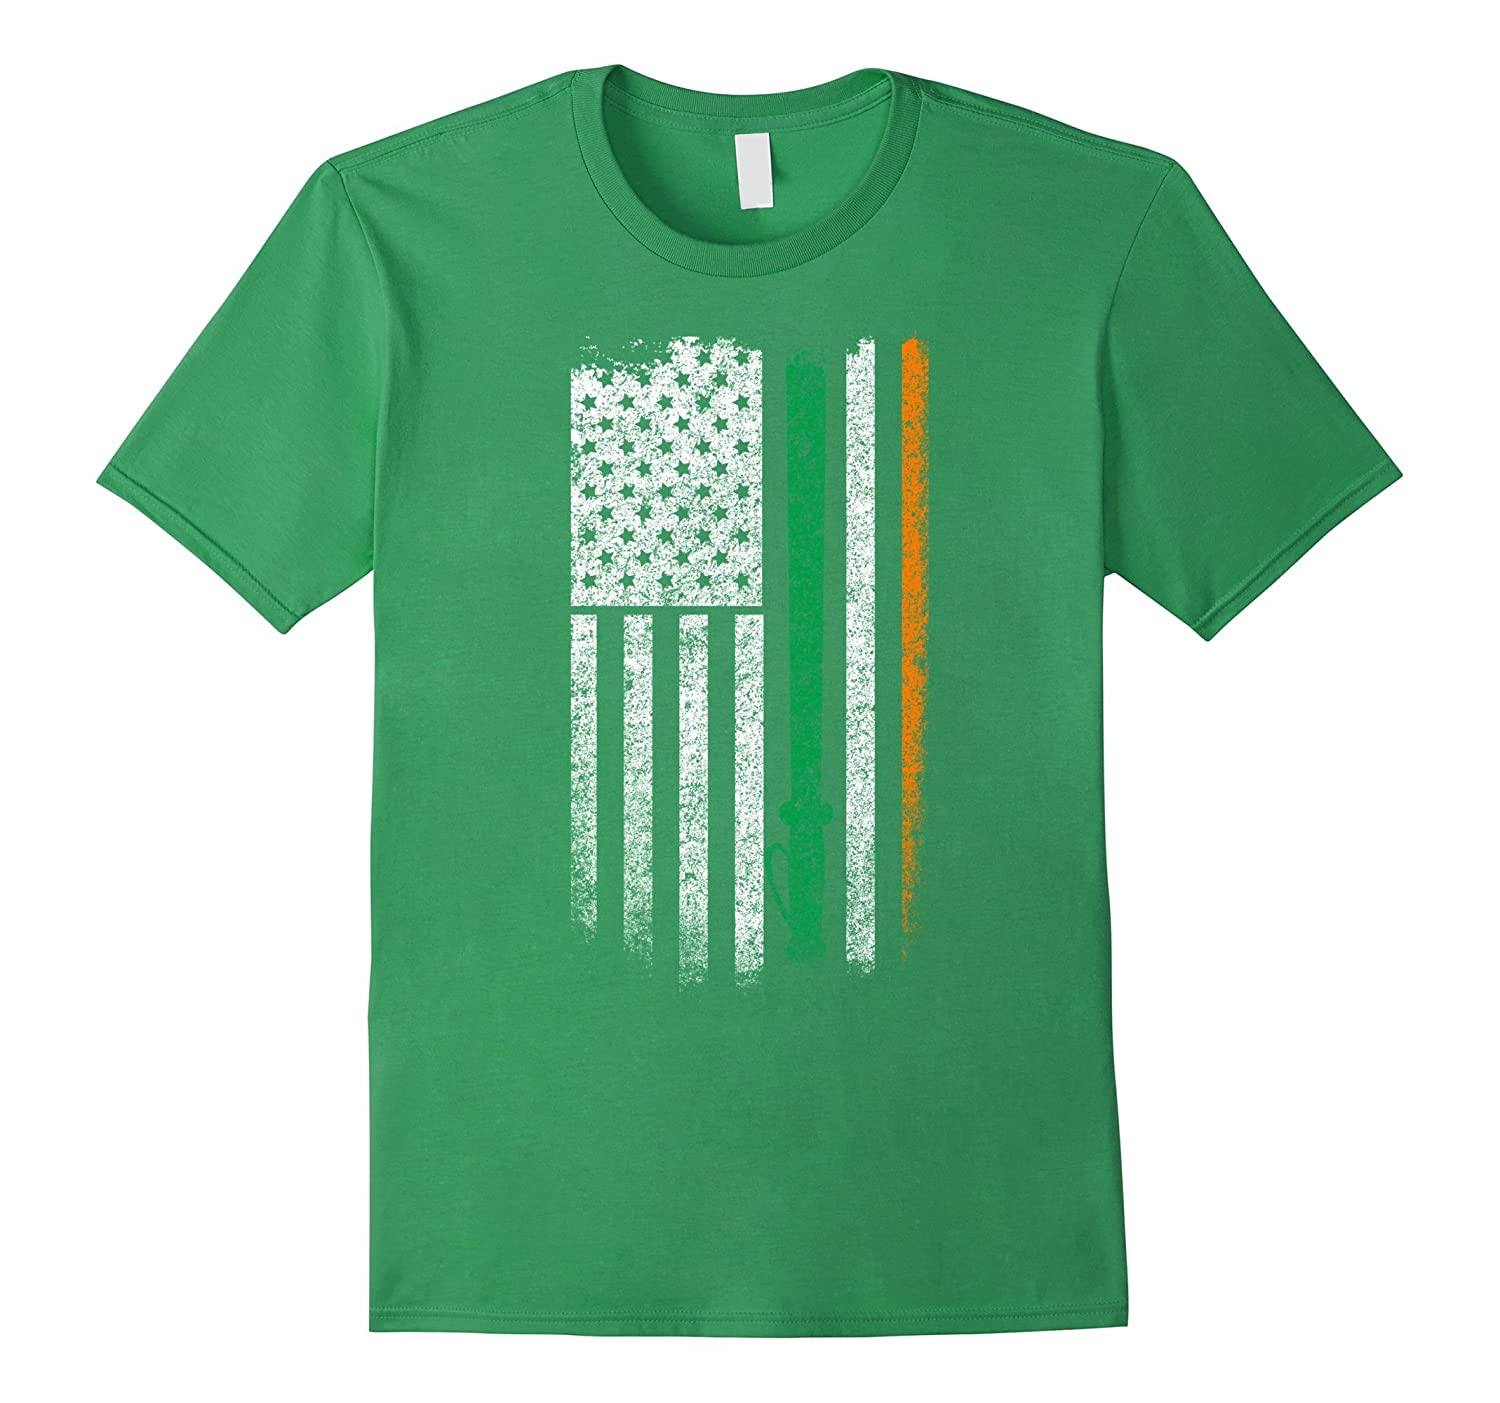 Irish Police: Irish Police Tribute T-Shirts Gifts For Saint Patricks Day